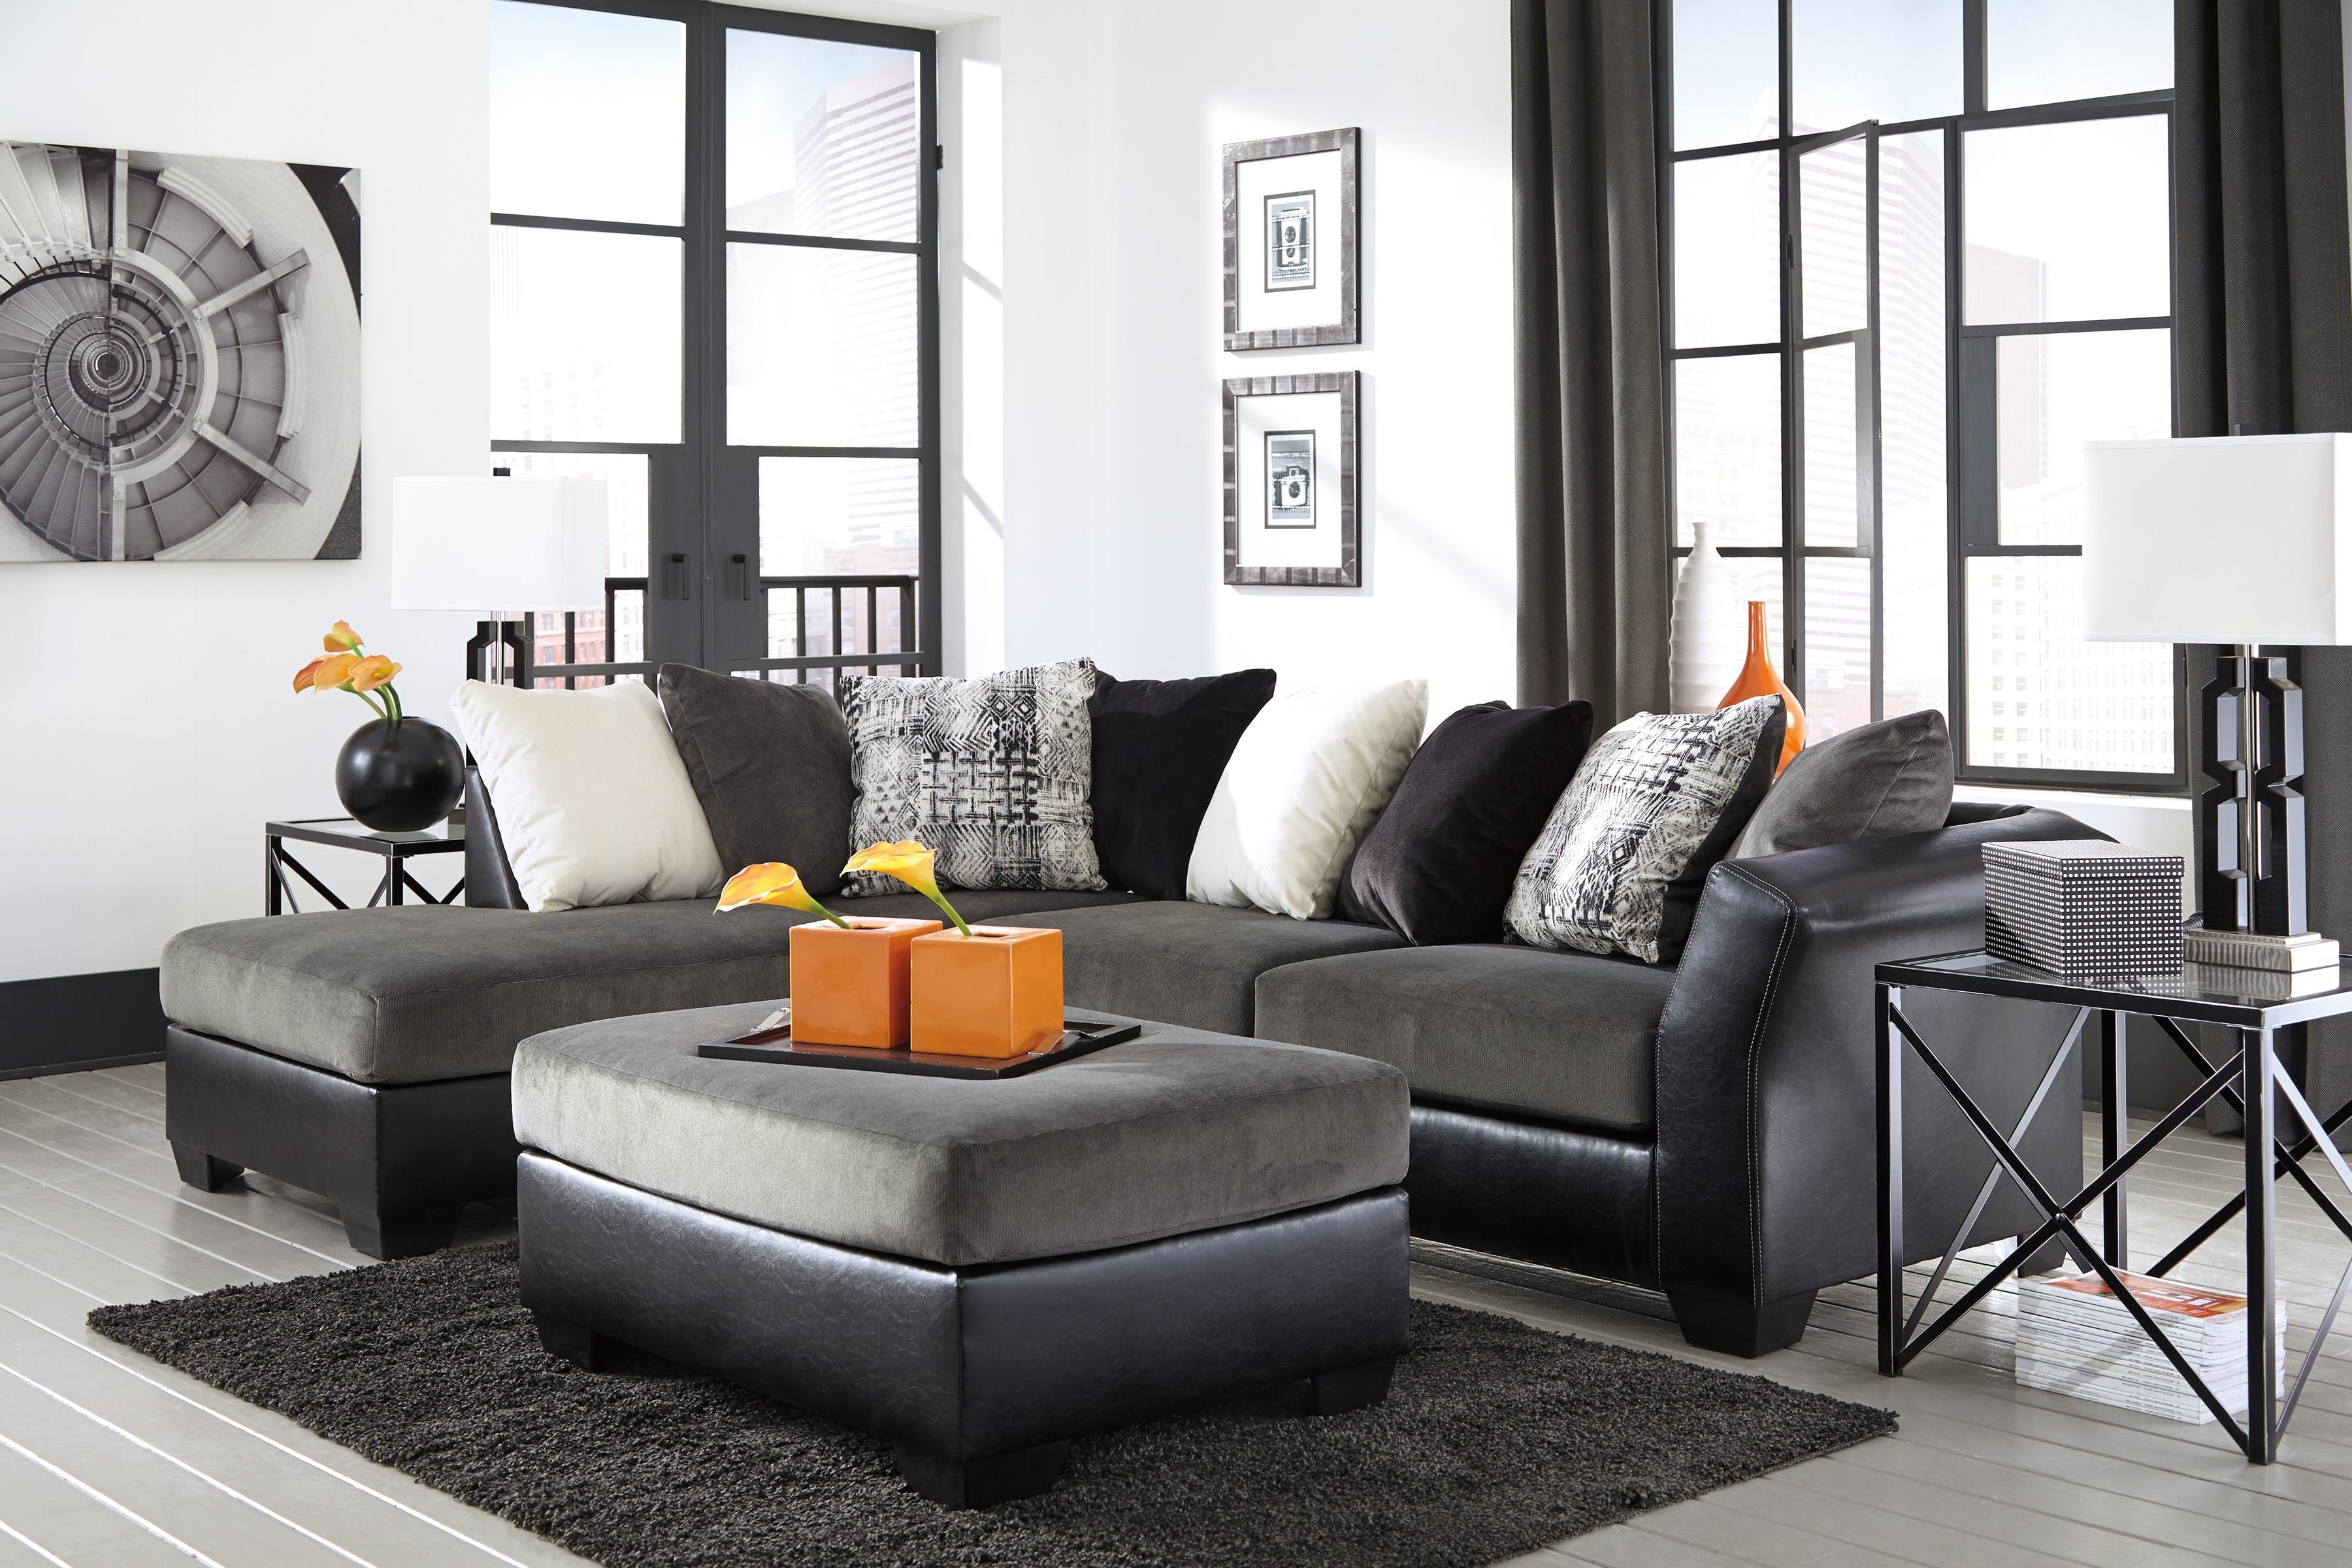 Most Recent Janesville Wi Sectional Sofas Throughout Ashley Furniture Store Janesville Wi (View 5 of 15)